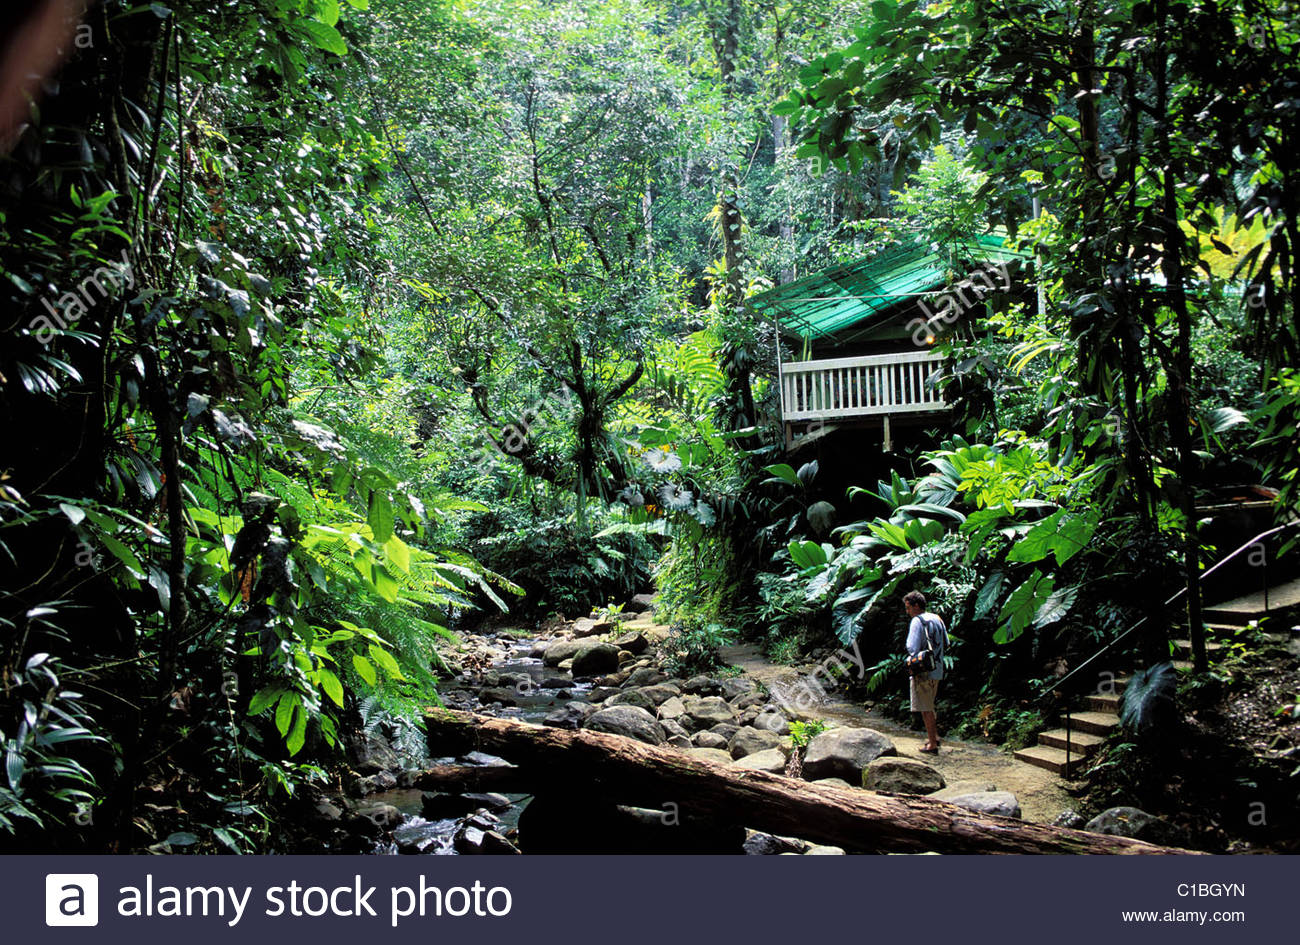 Valombreuse Floral Park Basse-Terre Island, France, Guadeloupe (French West Indies), Basse Terre, Valombreuse ...